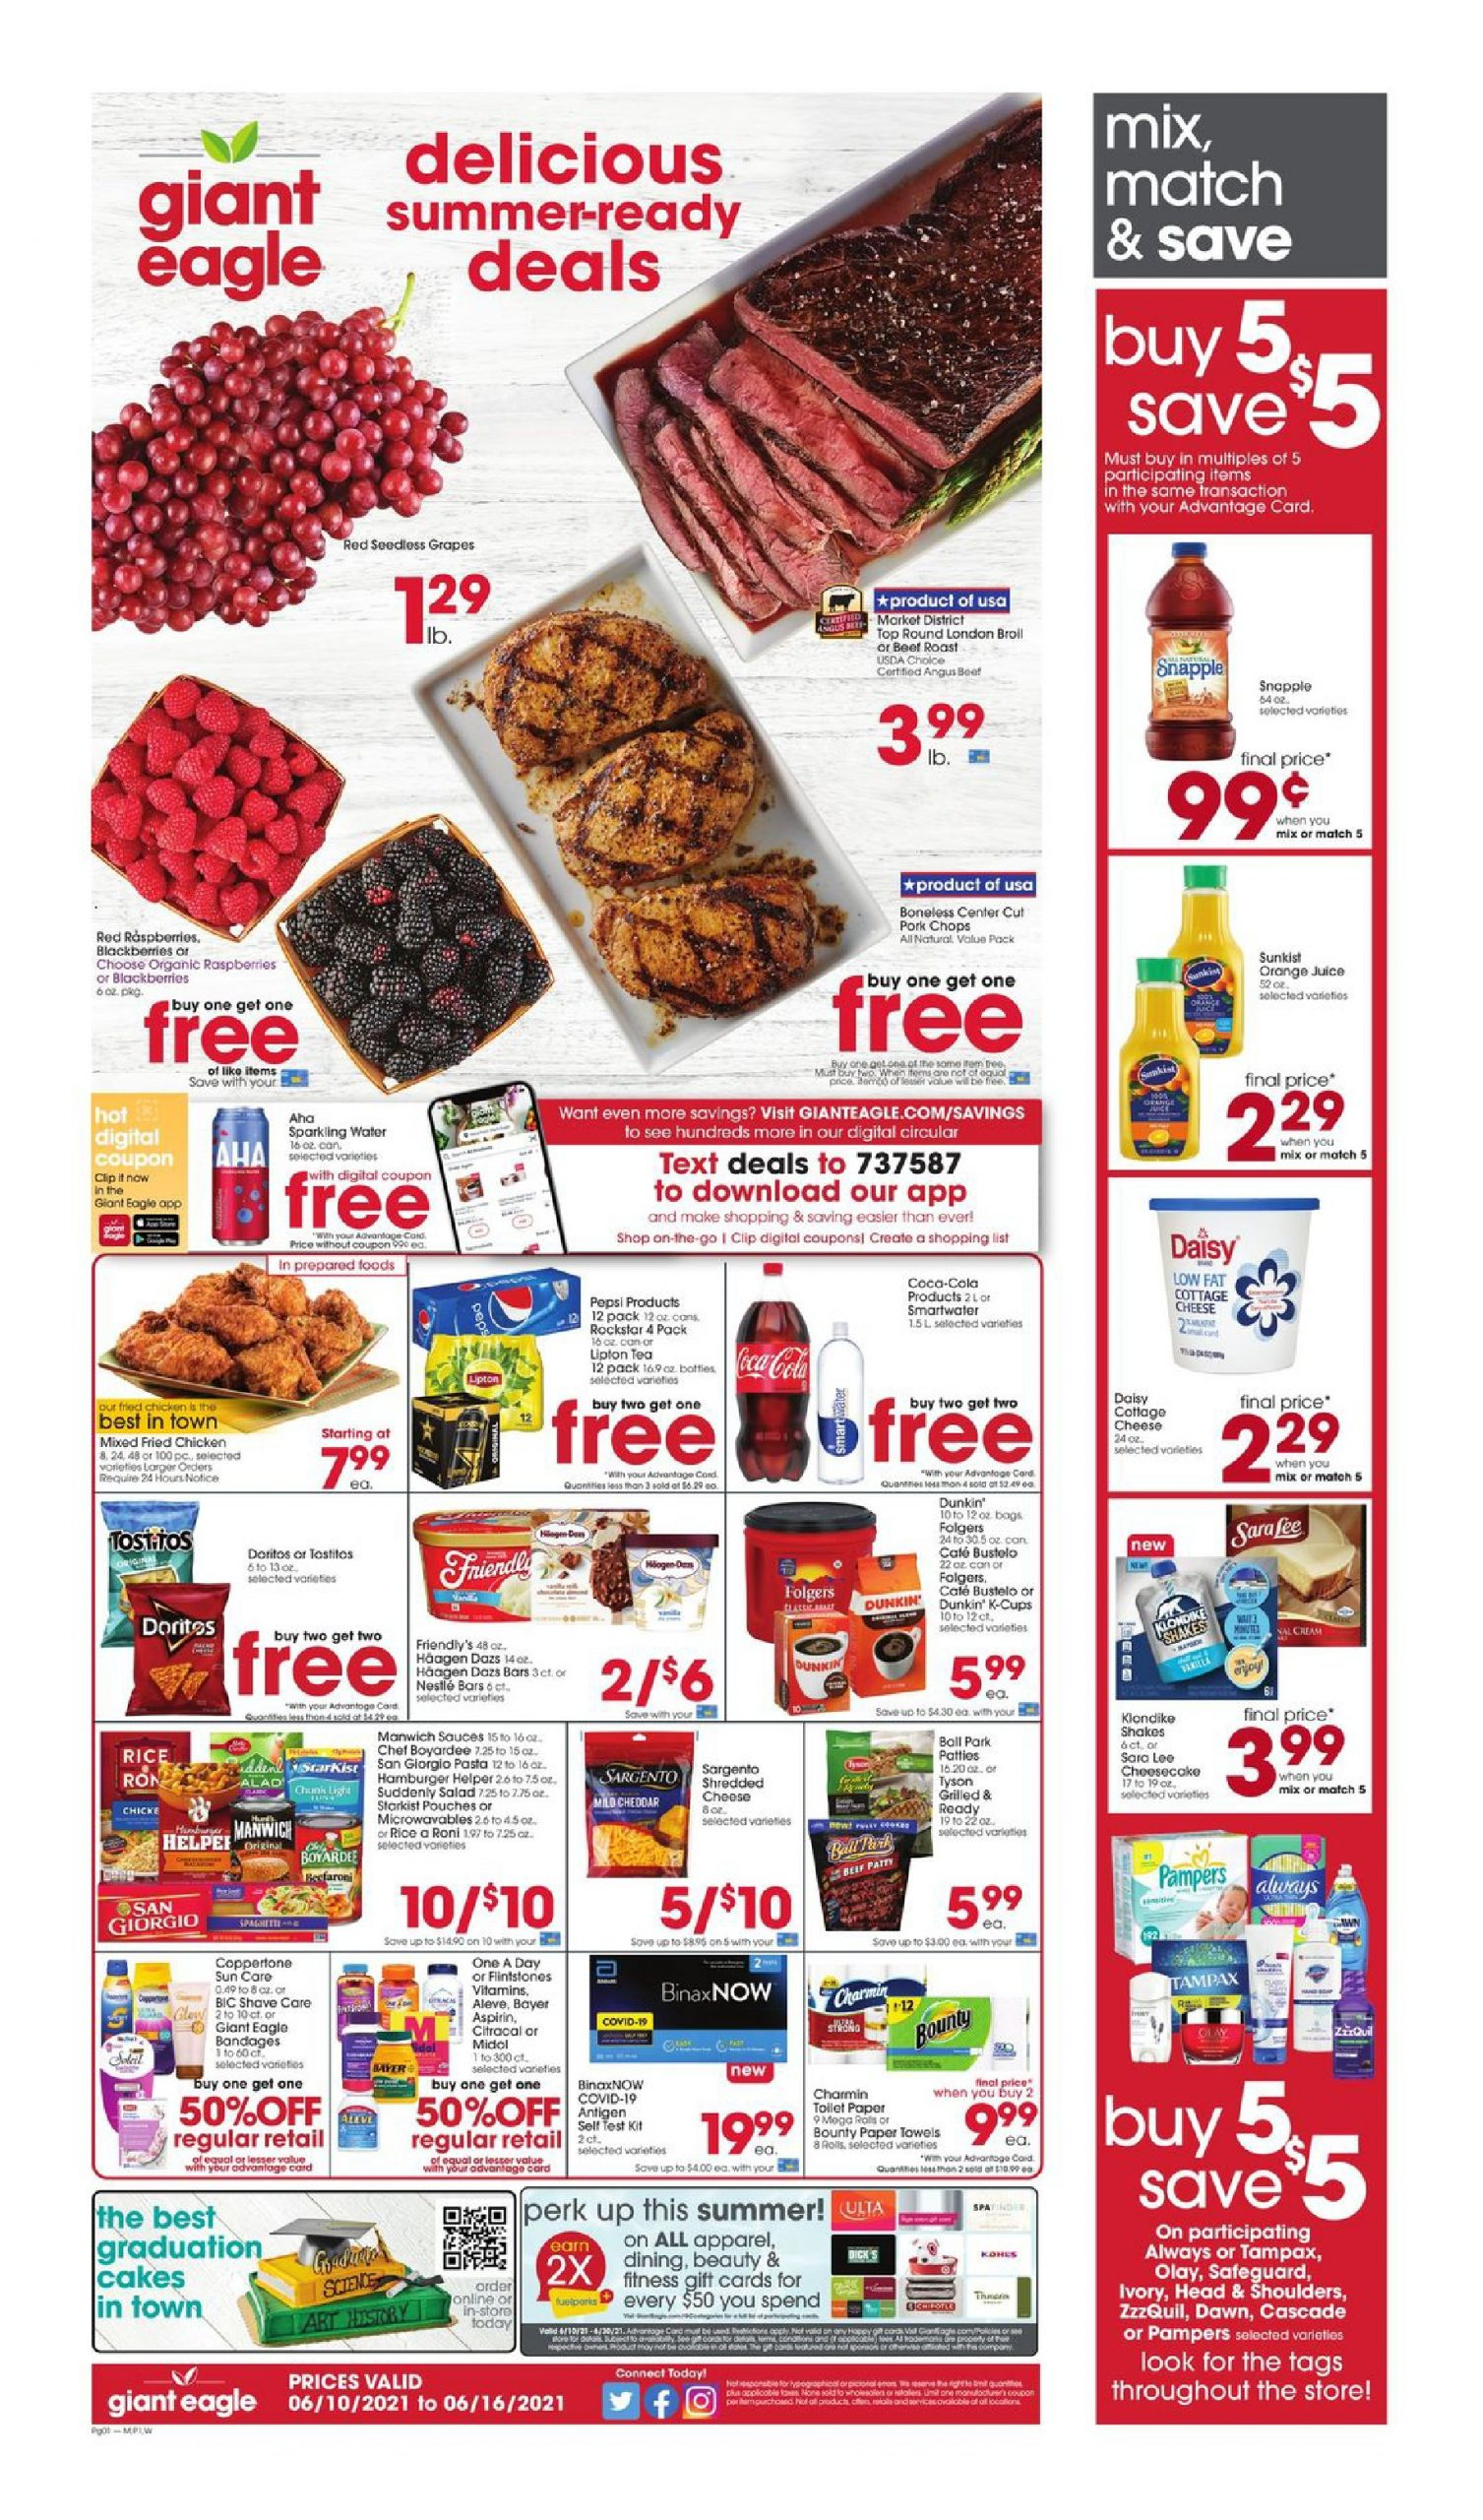 Giant Eagle Weekly ad Flyer June 10 - June 16, 2021